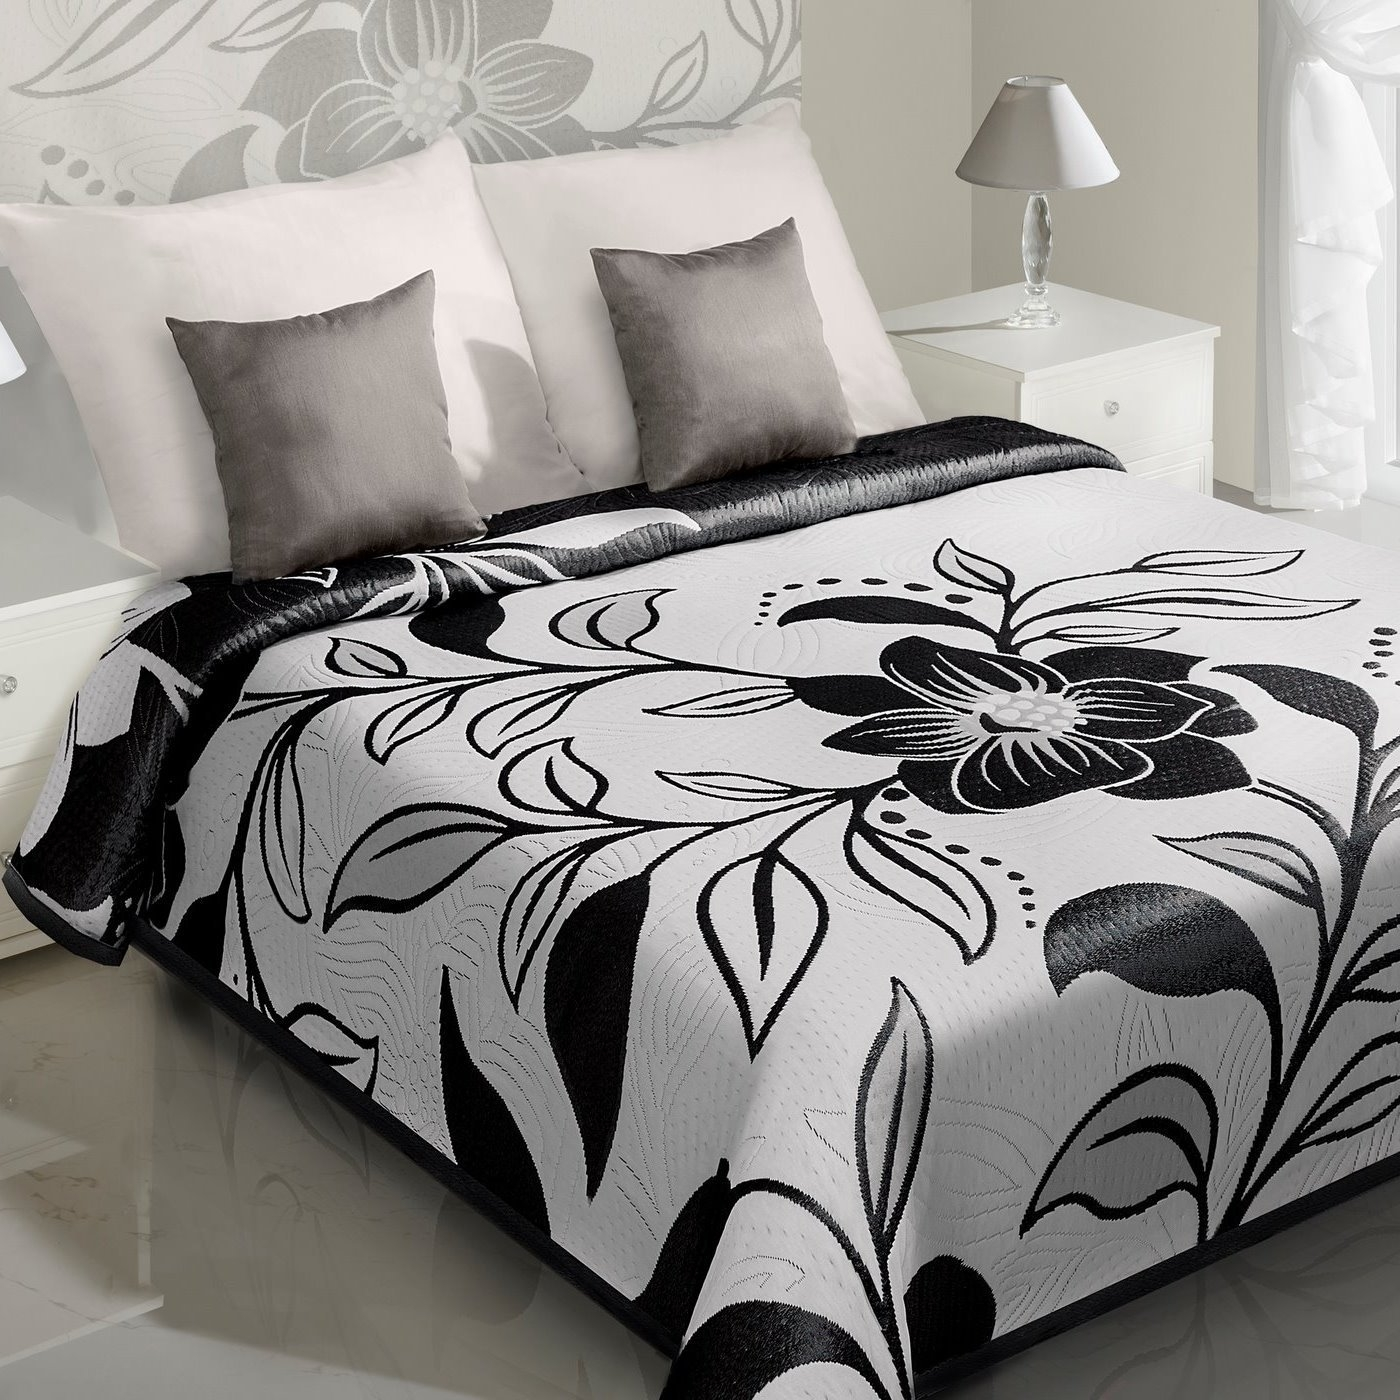 Cuvertura reversibila Lovetta Cream / Black 170 x 210 cm